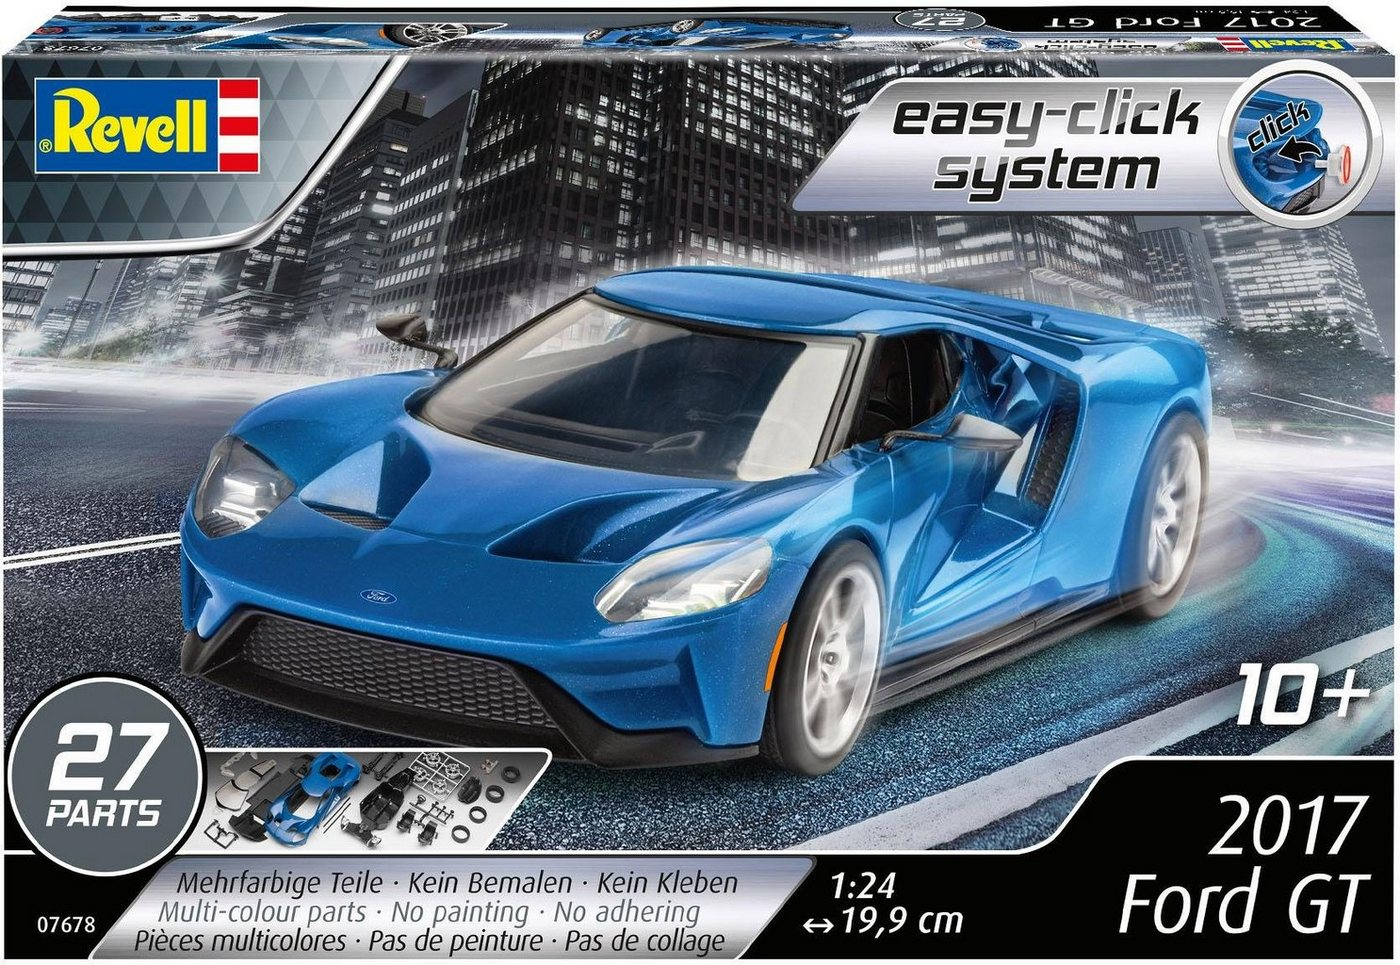 Revell Modellbausatz Auto, Maßstab 1:24, »2017 Ford GT, easy-click-system«